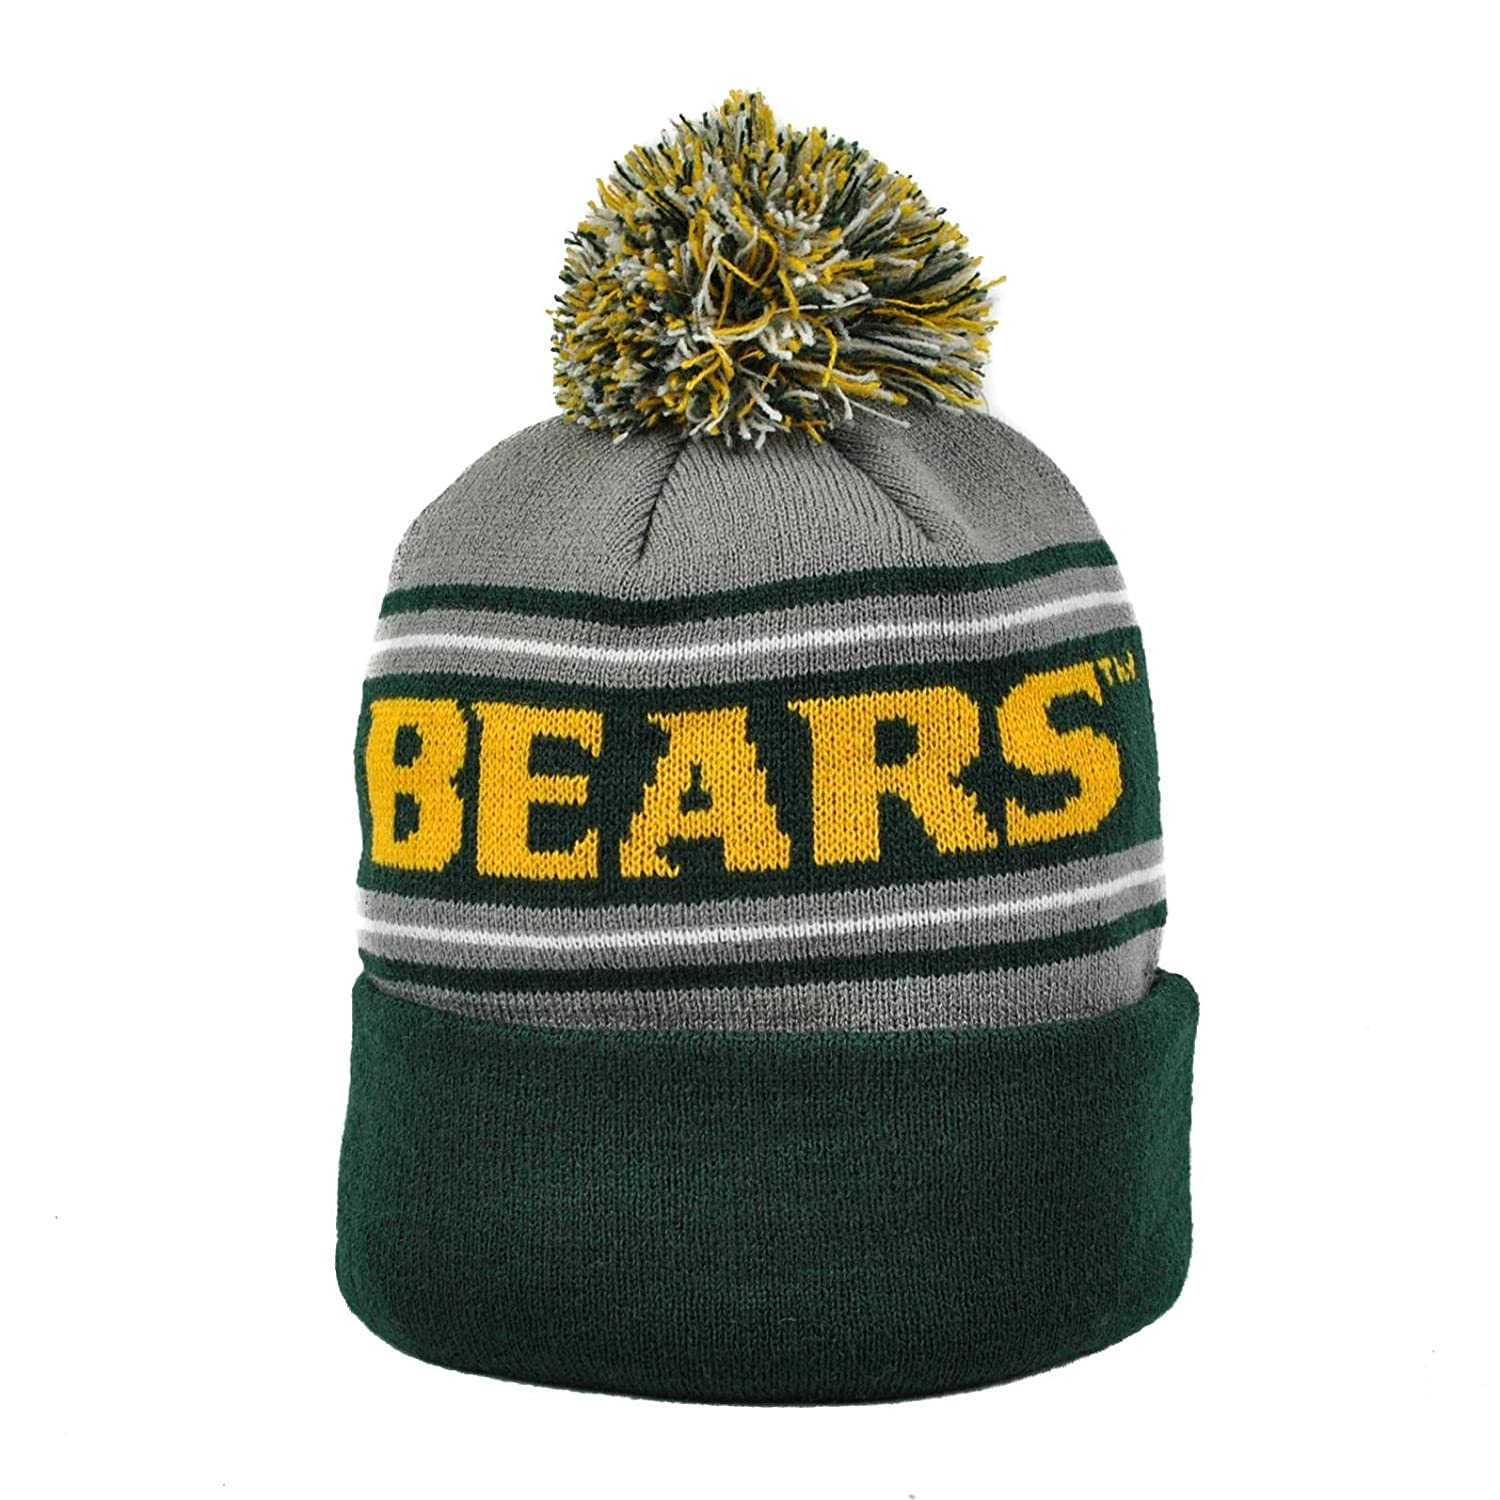 online store 15849 6f59e Amazon.com   Top of the World Baylor Bears Green   Gray Ambient Cuffed Pom  Knit Hat (Adult One Size)   Sports   Outdoors